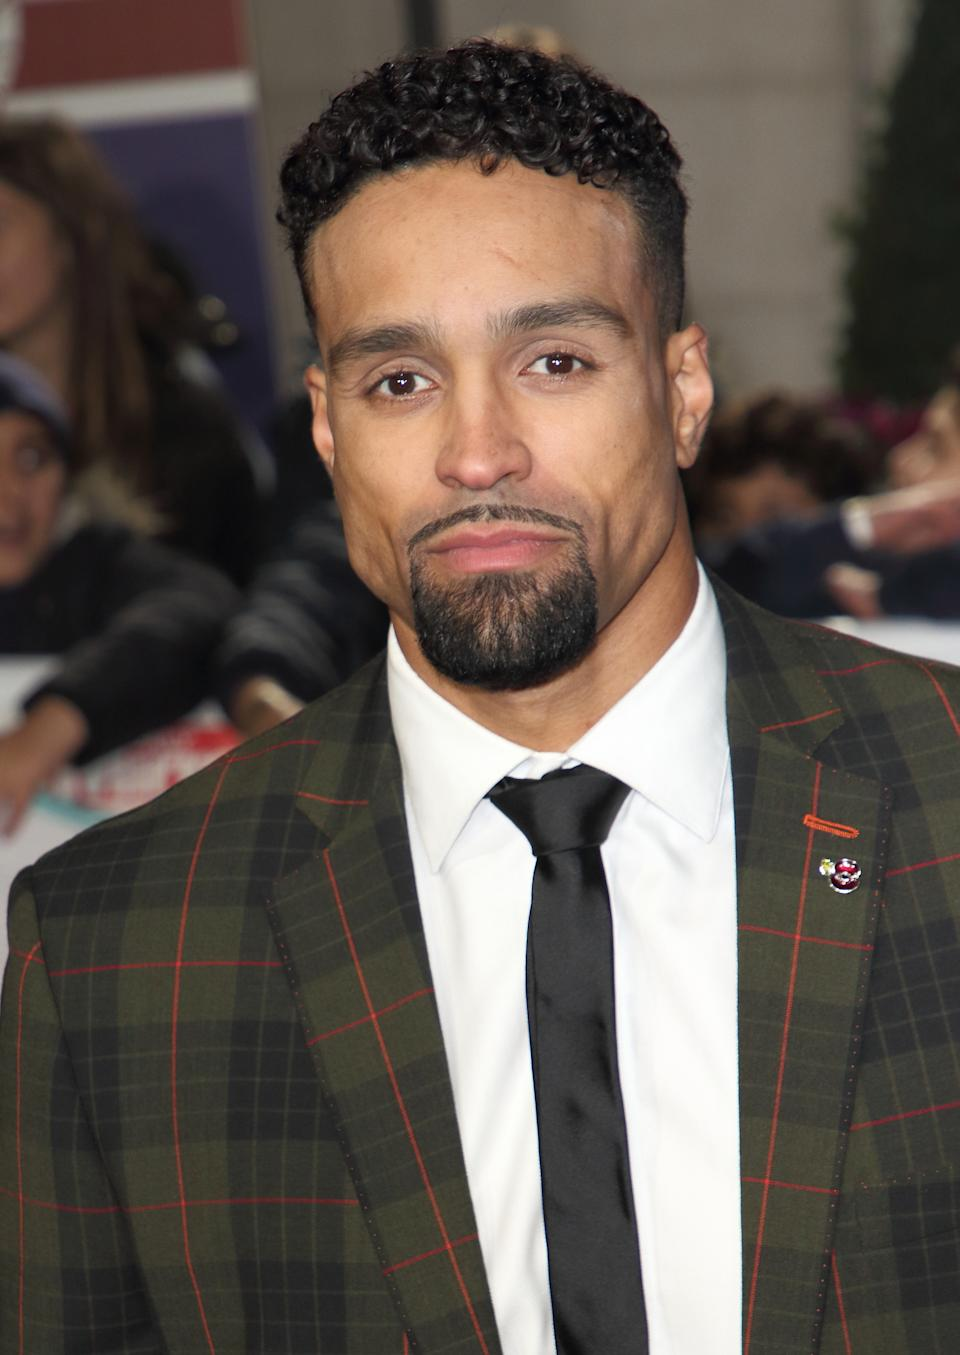 LONDON, -, UNITED KINGDOM - 2019/10/28: Ashley Banjo on the red carpet at The Daily Mirror Pride of Britain Awards, in partnership with TSB, at the Grosvenor House Hotel, Park Lane. (Photo by Keith Mayhew/SOPA Images/LightRocket via Getty Images)